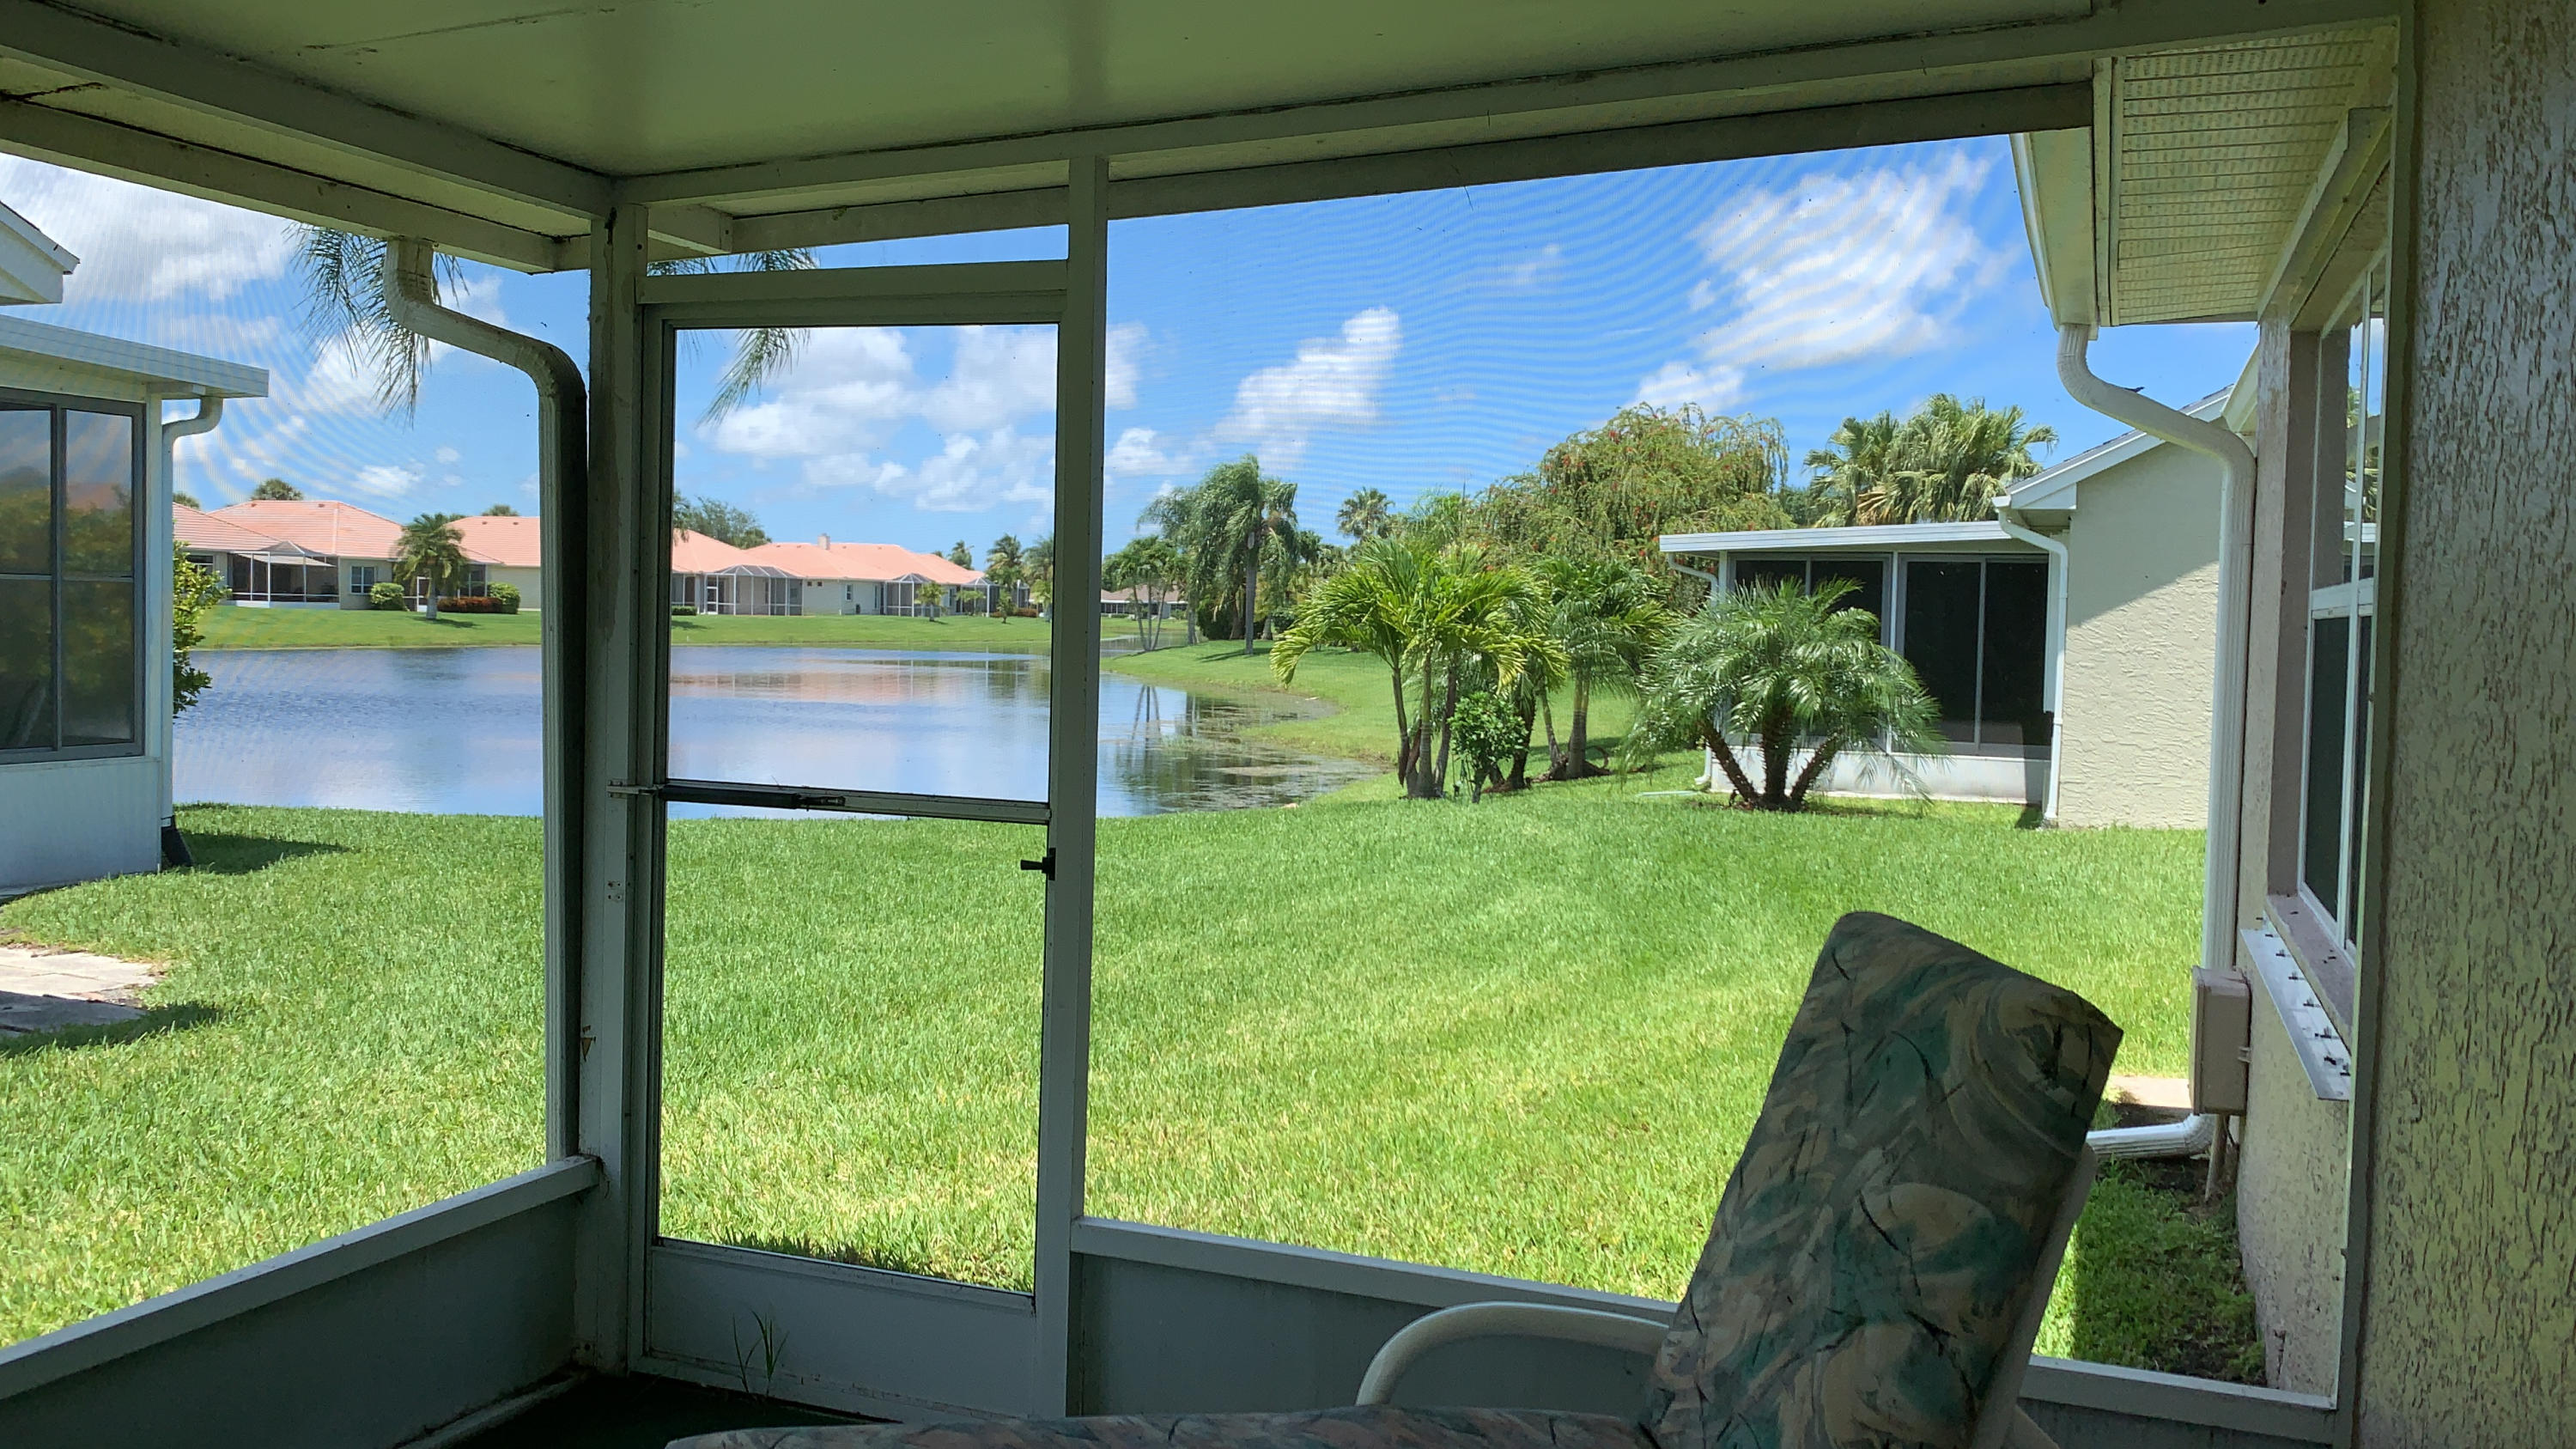 1045 Nw Tuscany Nw Drive, Saint Lucie West, FL 34986